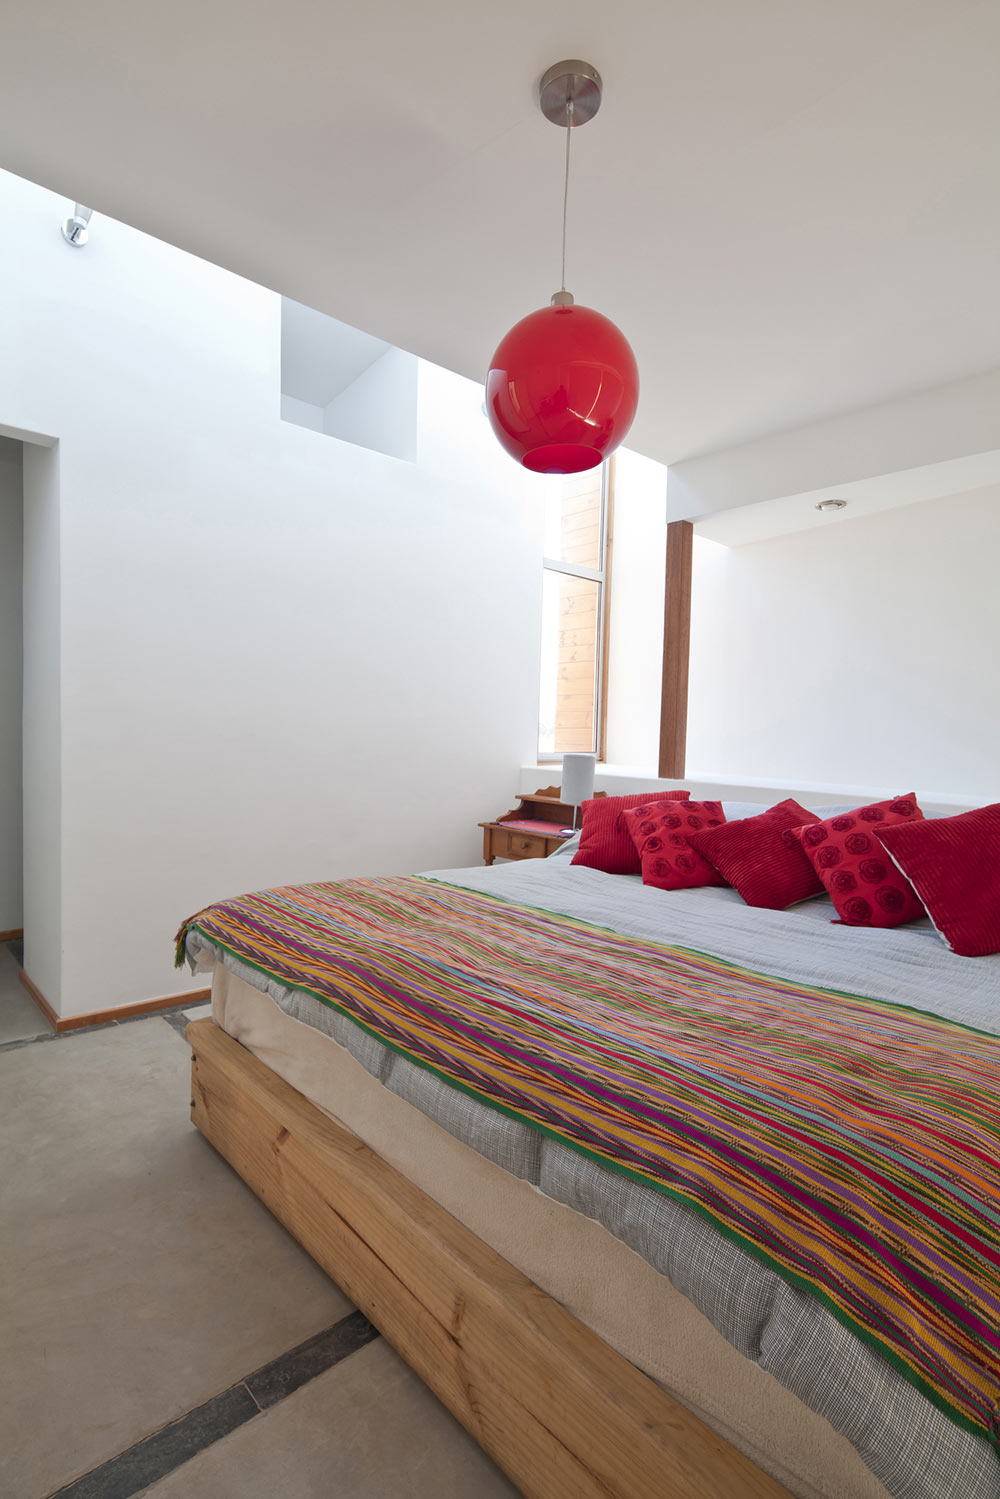 Bedroom, Red Light, Home in Chile with Japanese Influences